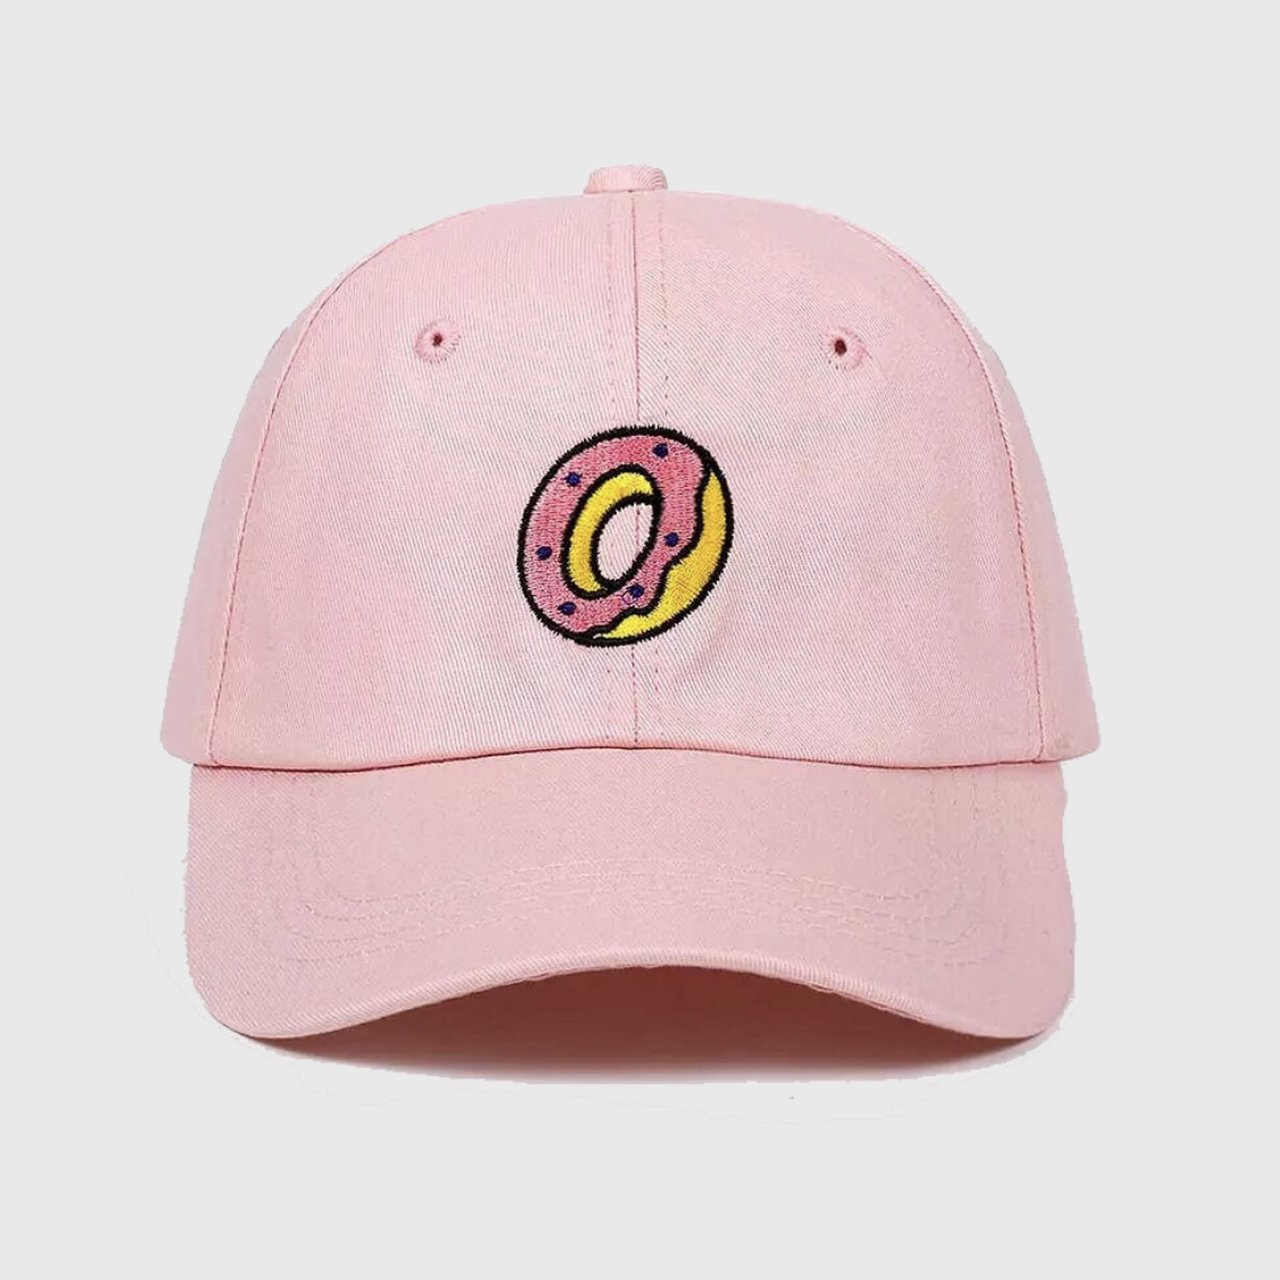 Donut baseball cap with coloured embroidery. Perfect for or - Depop ad27892b45f6